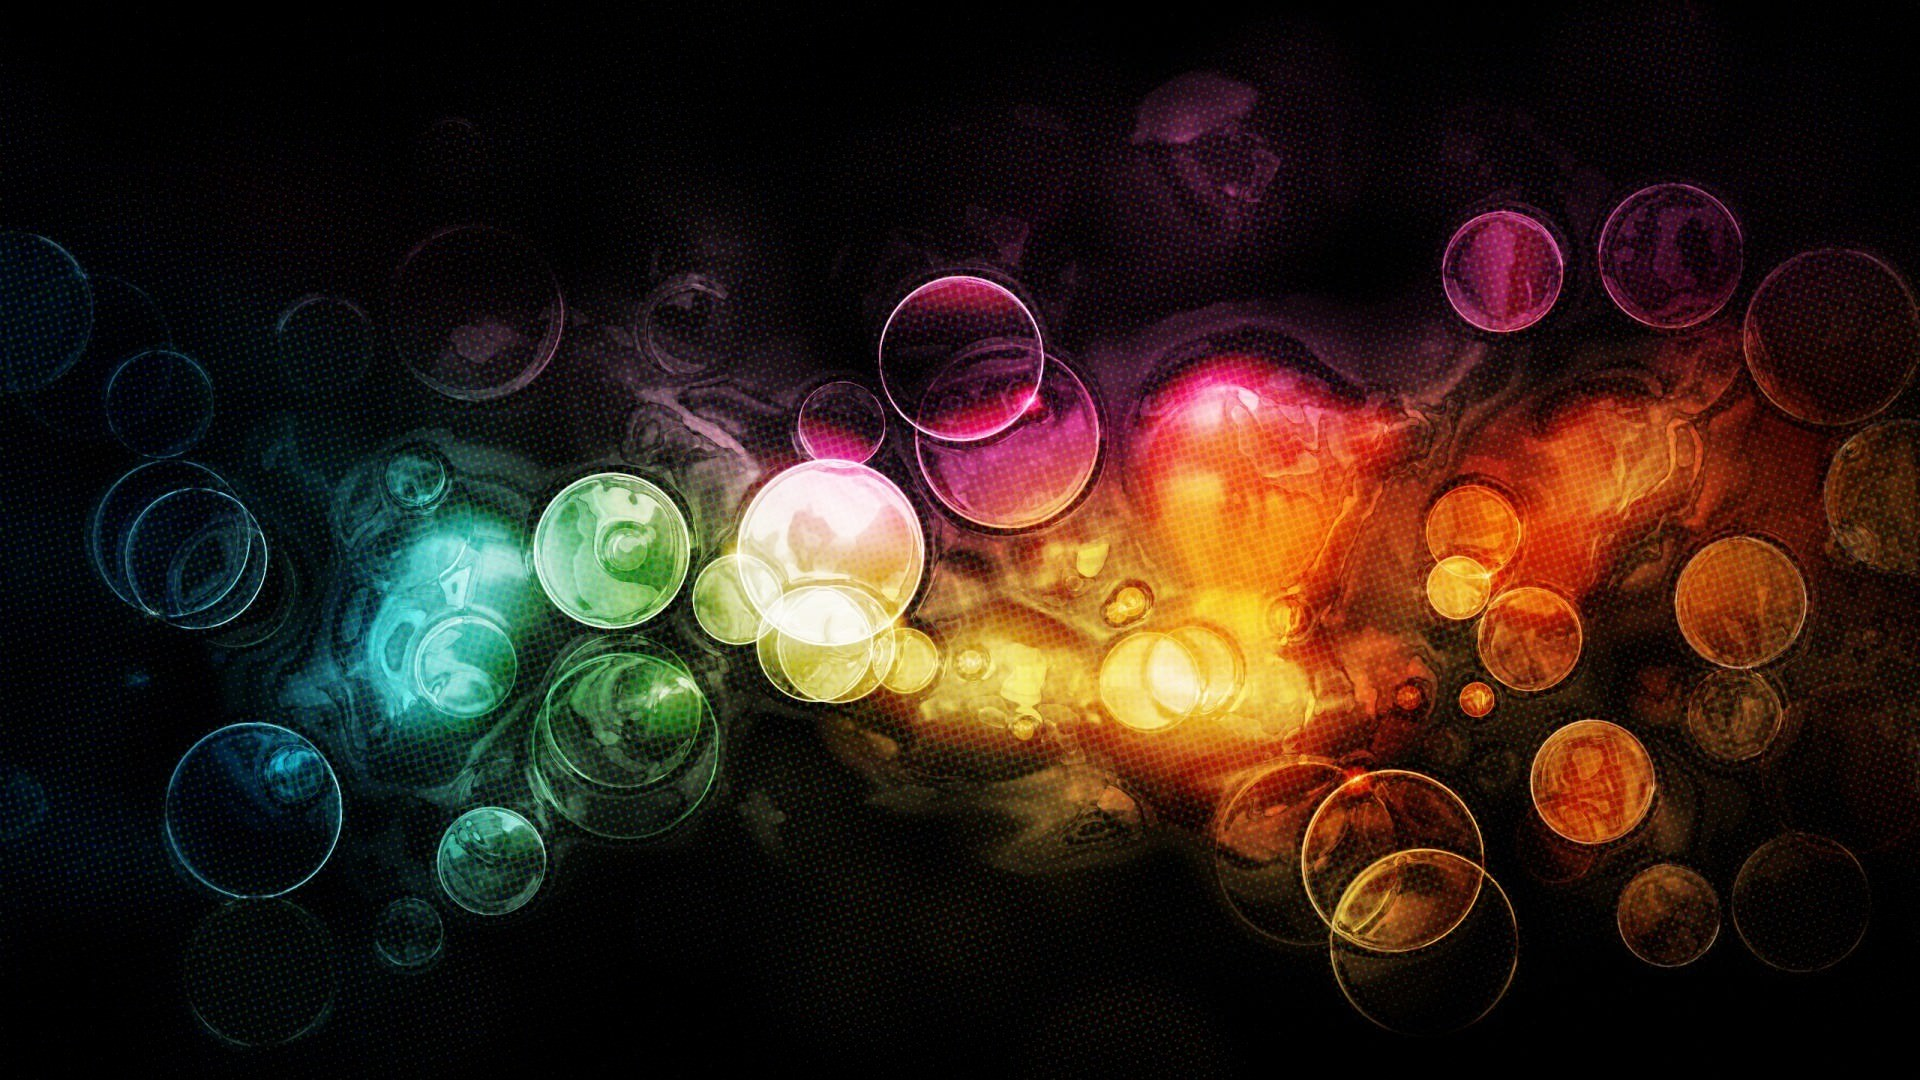 1920 1080 Colorful Bubble Wallpaper Abstract Art